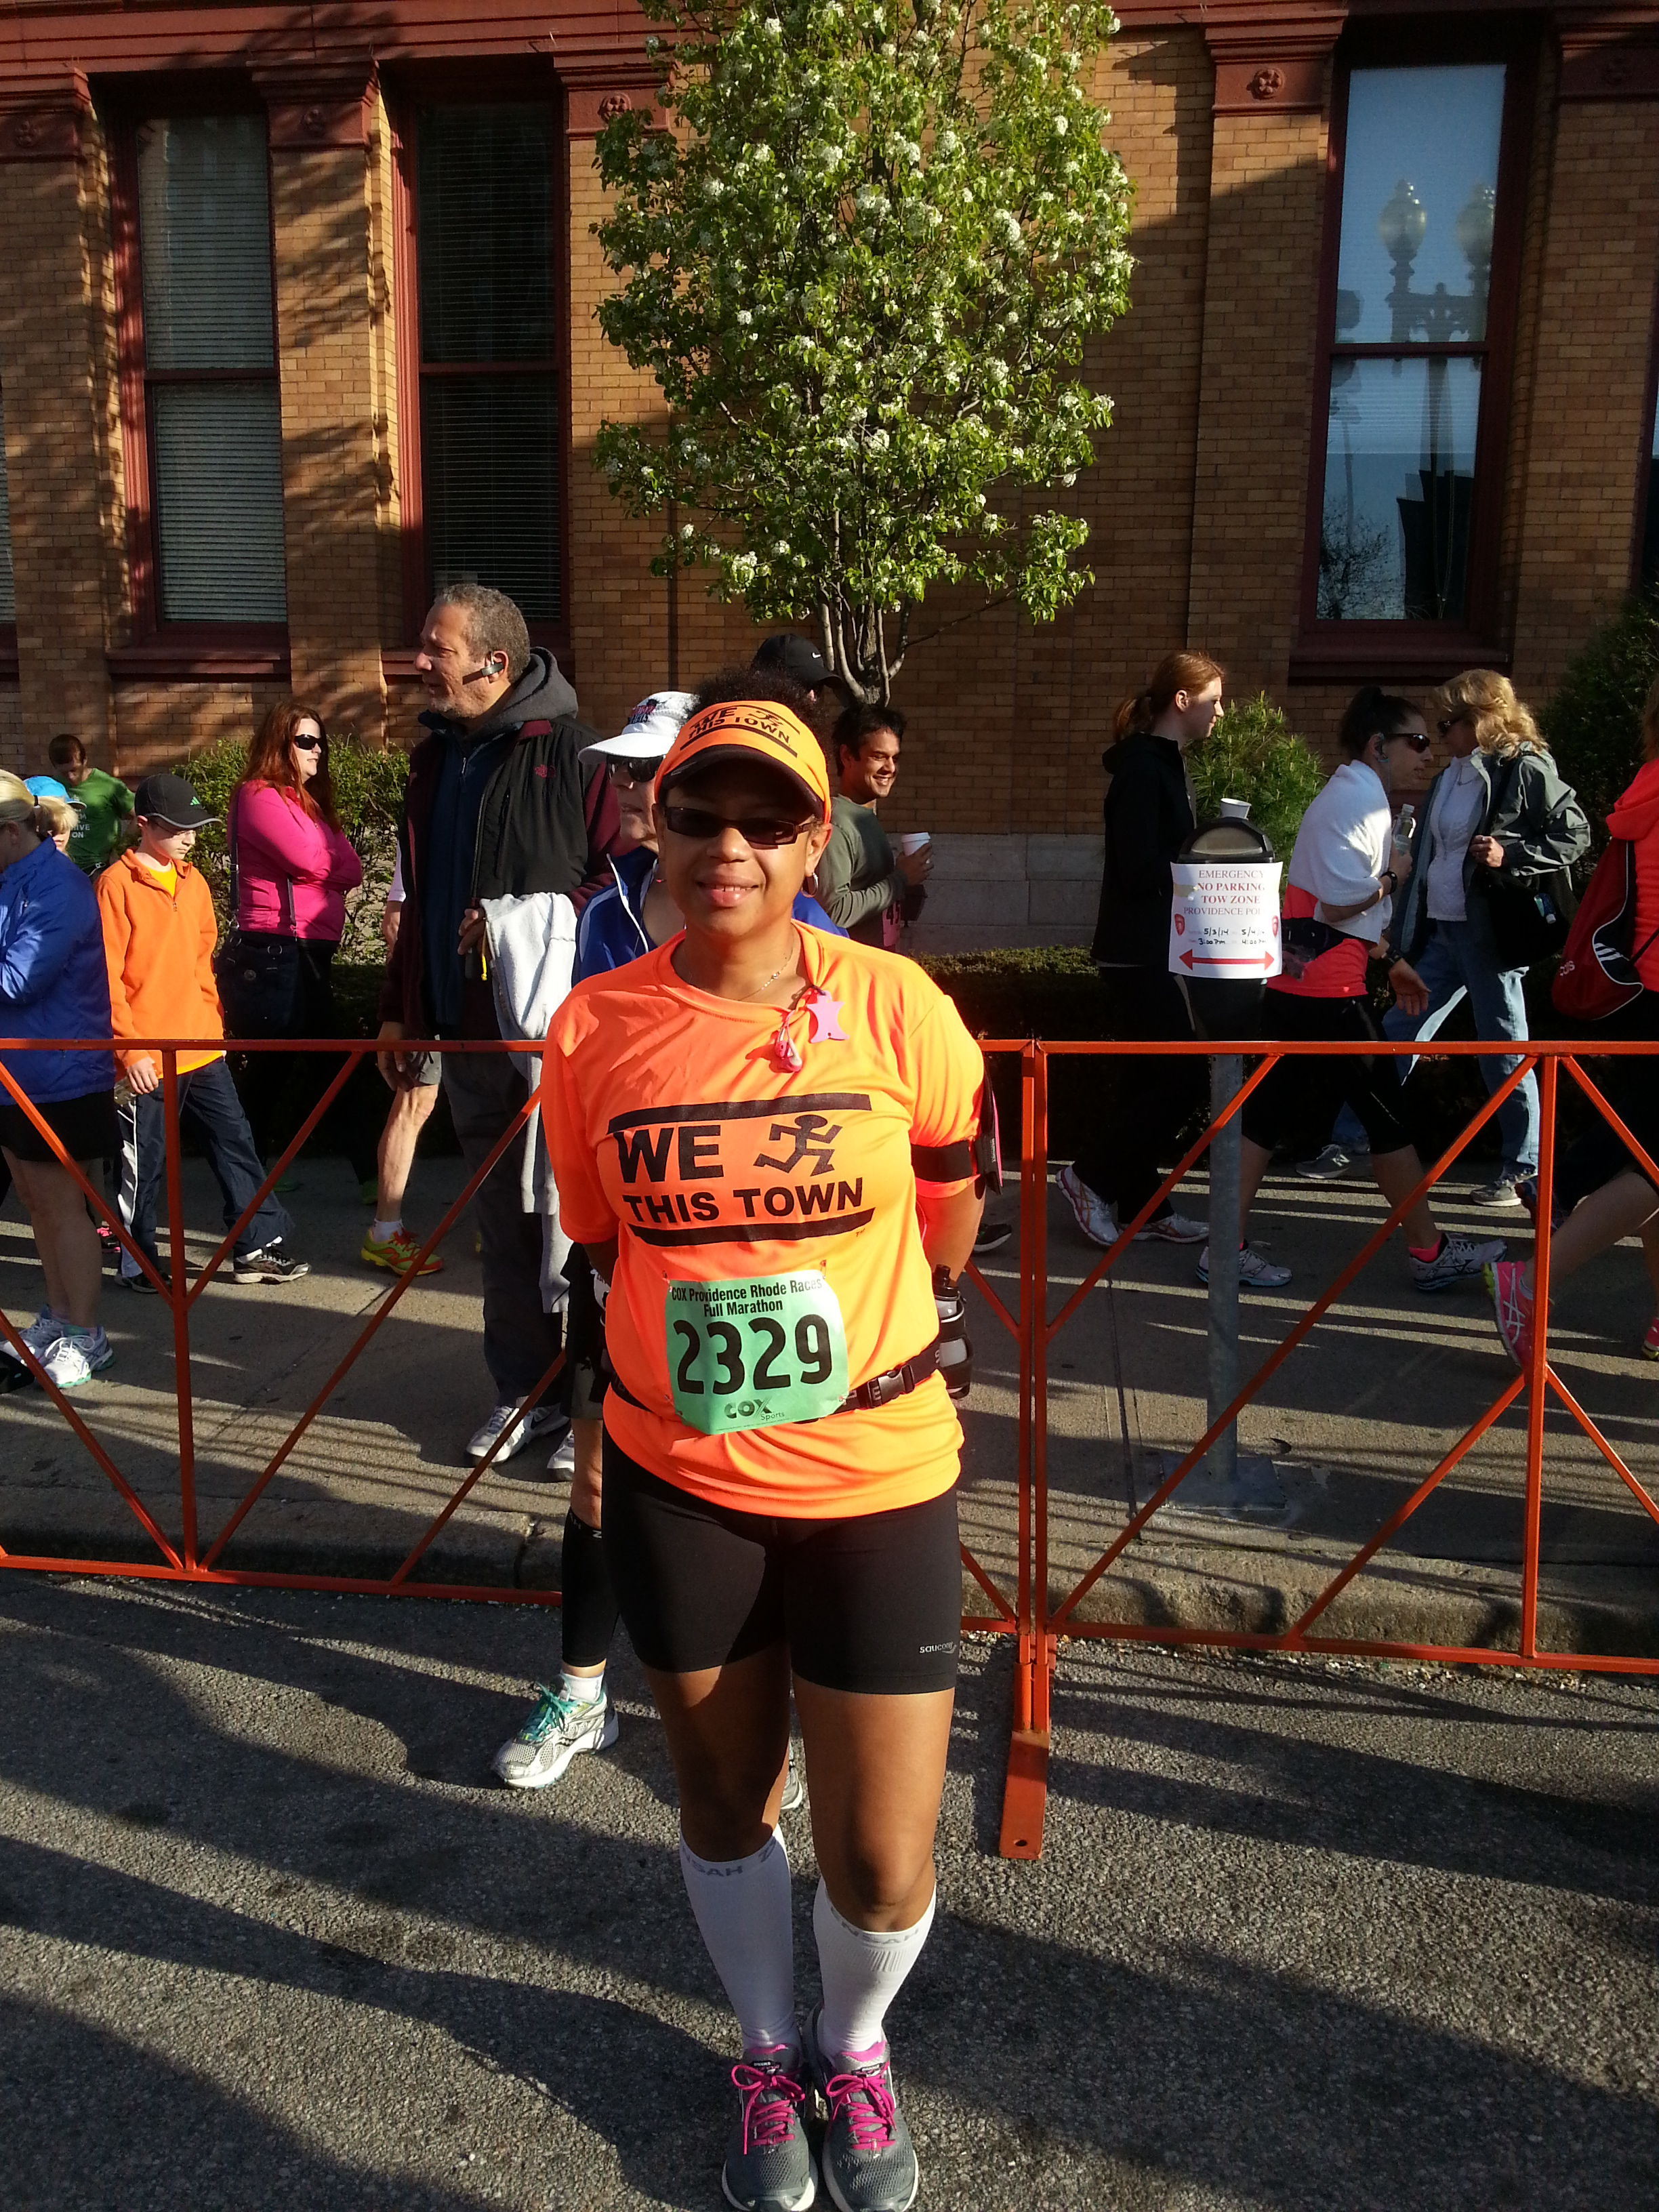 "Nancy ""Smooth"" Ruffin      Health & Wellness Support coordinator     5K's, 5 milers, 10K's, Half Marathons and a Full Marathon. A former fitness/aerobics instructor of 6 years.    Captain Responsibilities:  Provide nutrition and exercises information. Assist and support members as a pace mentor when they transition to jogging from walking.    Today, 30 pounds lighter and many miles under my feet I now work for Weight Watchers International and run whenever I can. I have incorporated into my life healthy eating habits and running my town and willing to run yours. Come join me and the positive, energetic and supportive members of We Run This Town and never run alone again.   contact me at  neruffin@verizon.net (or click on my name)"